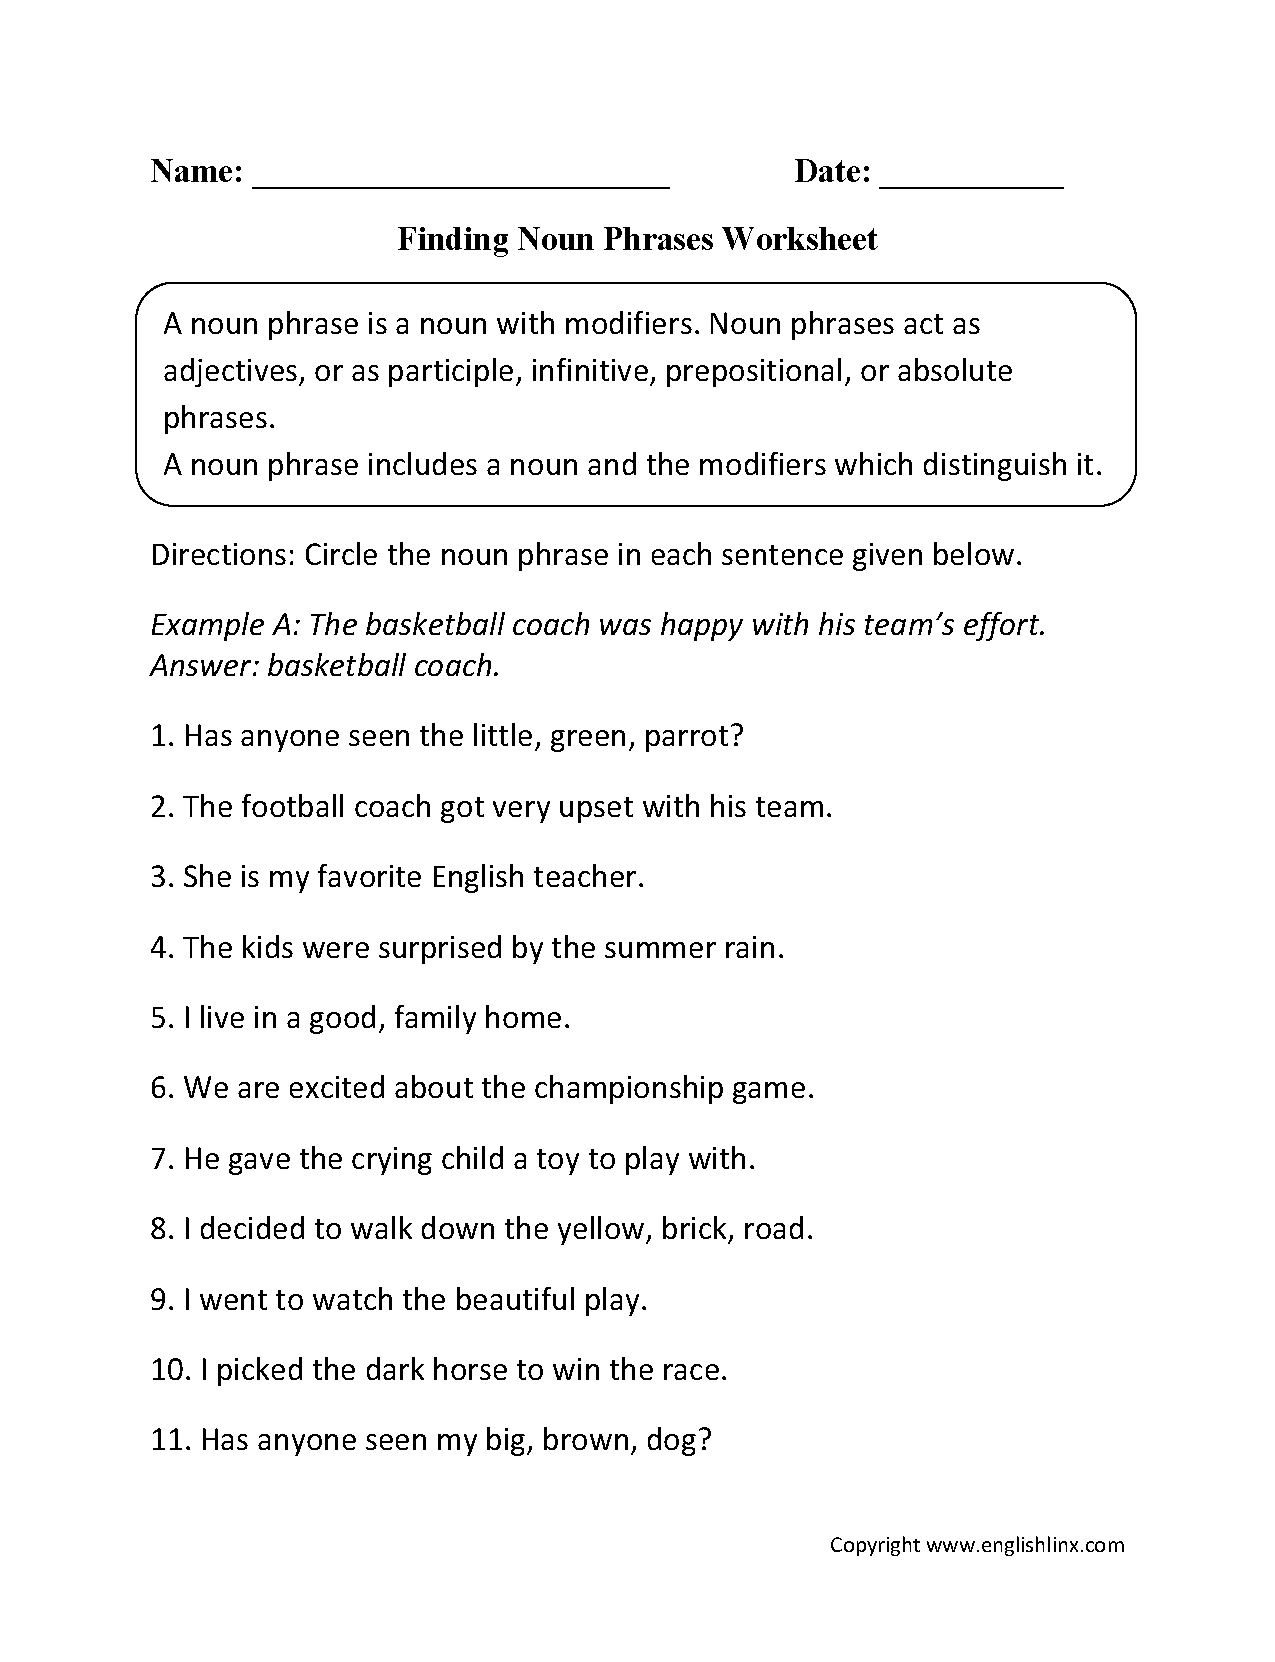 Nouns Worksheets – Verb Phrase Worksheet